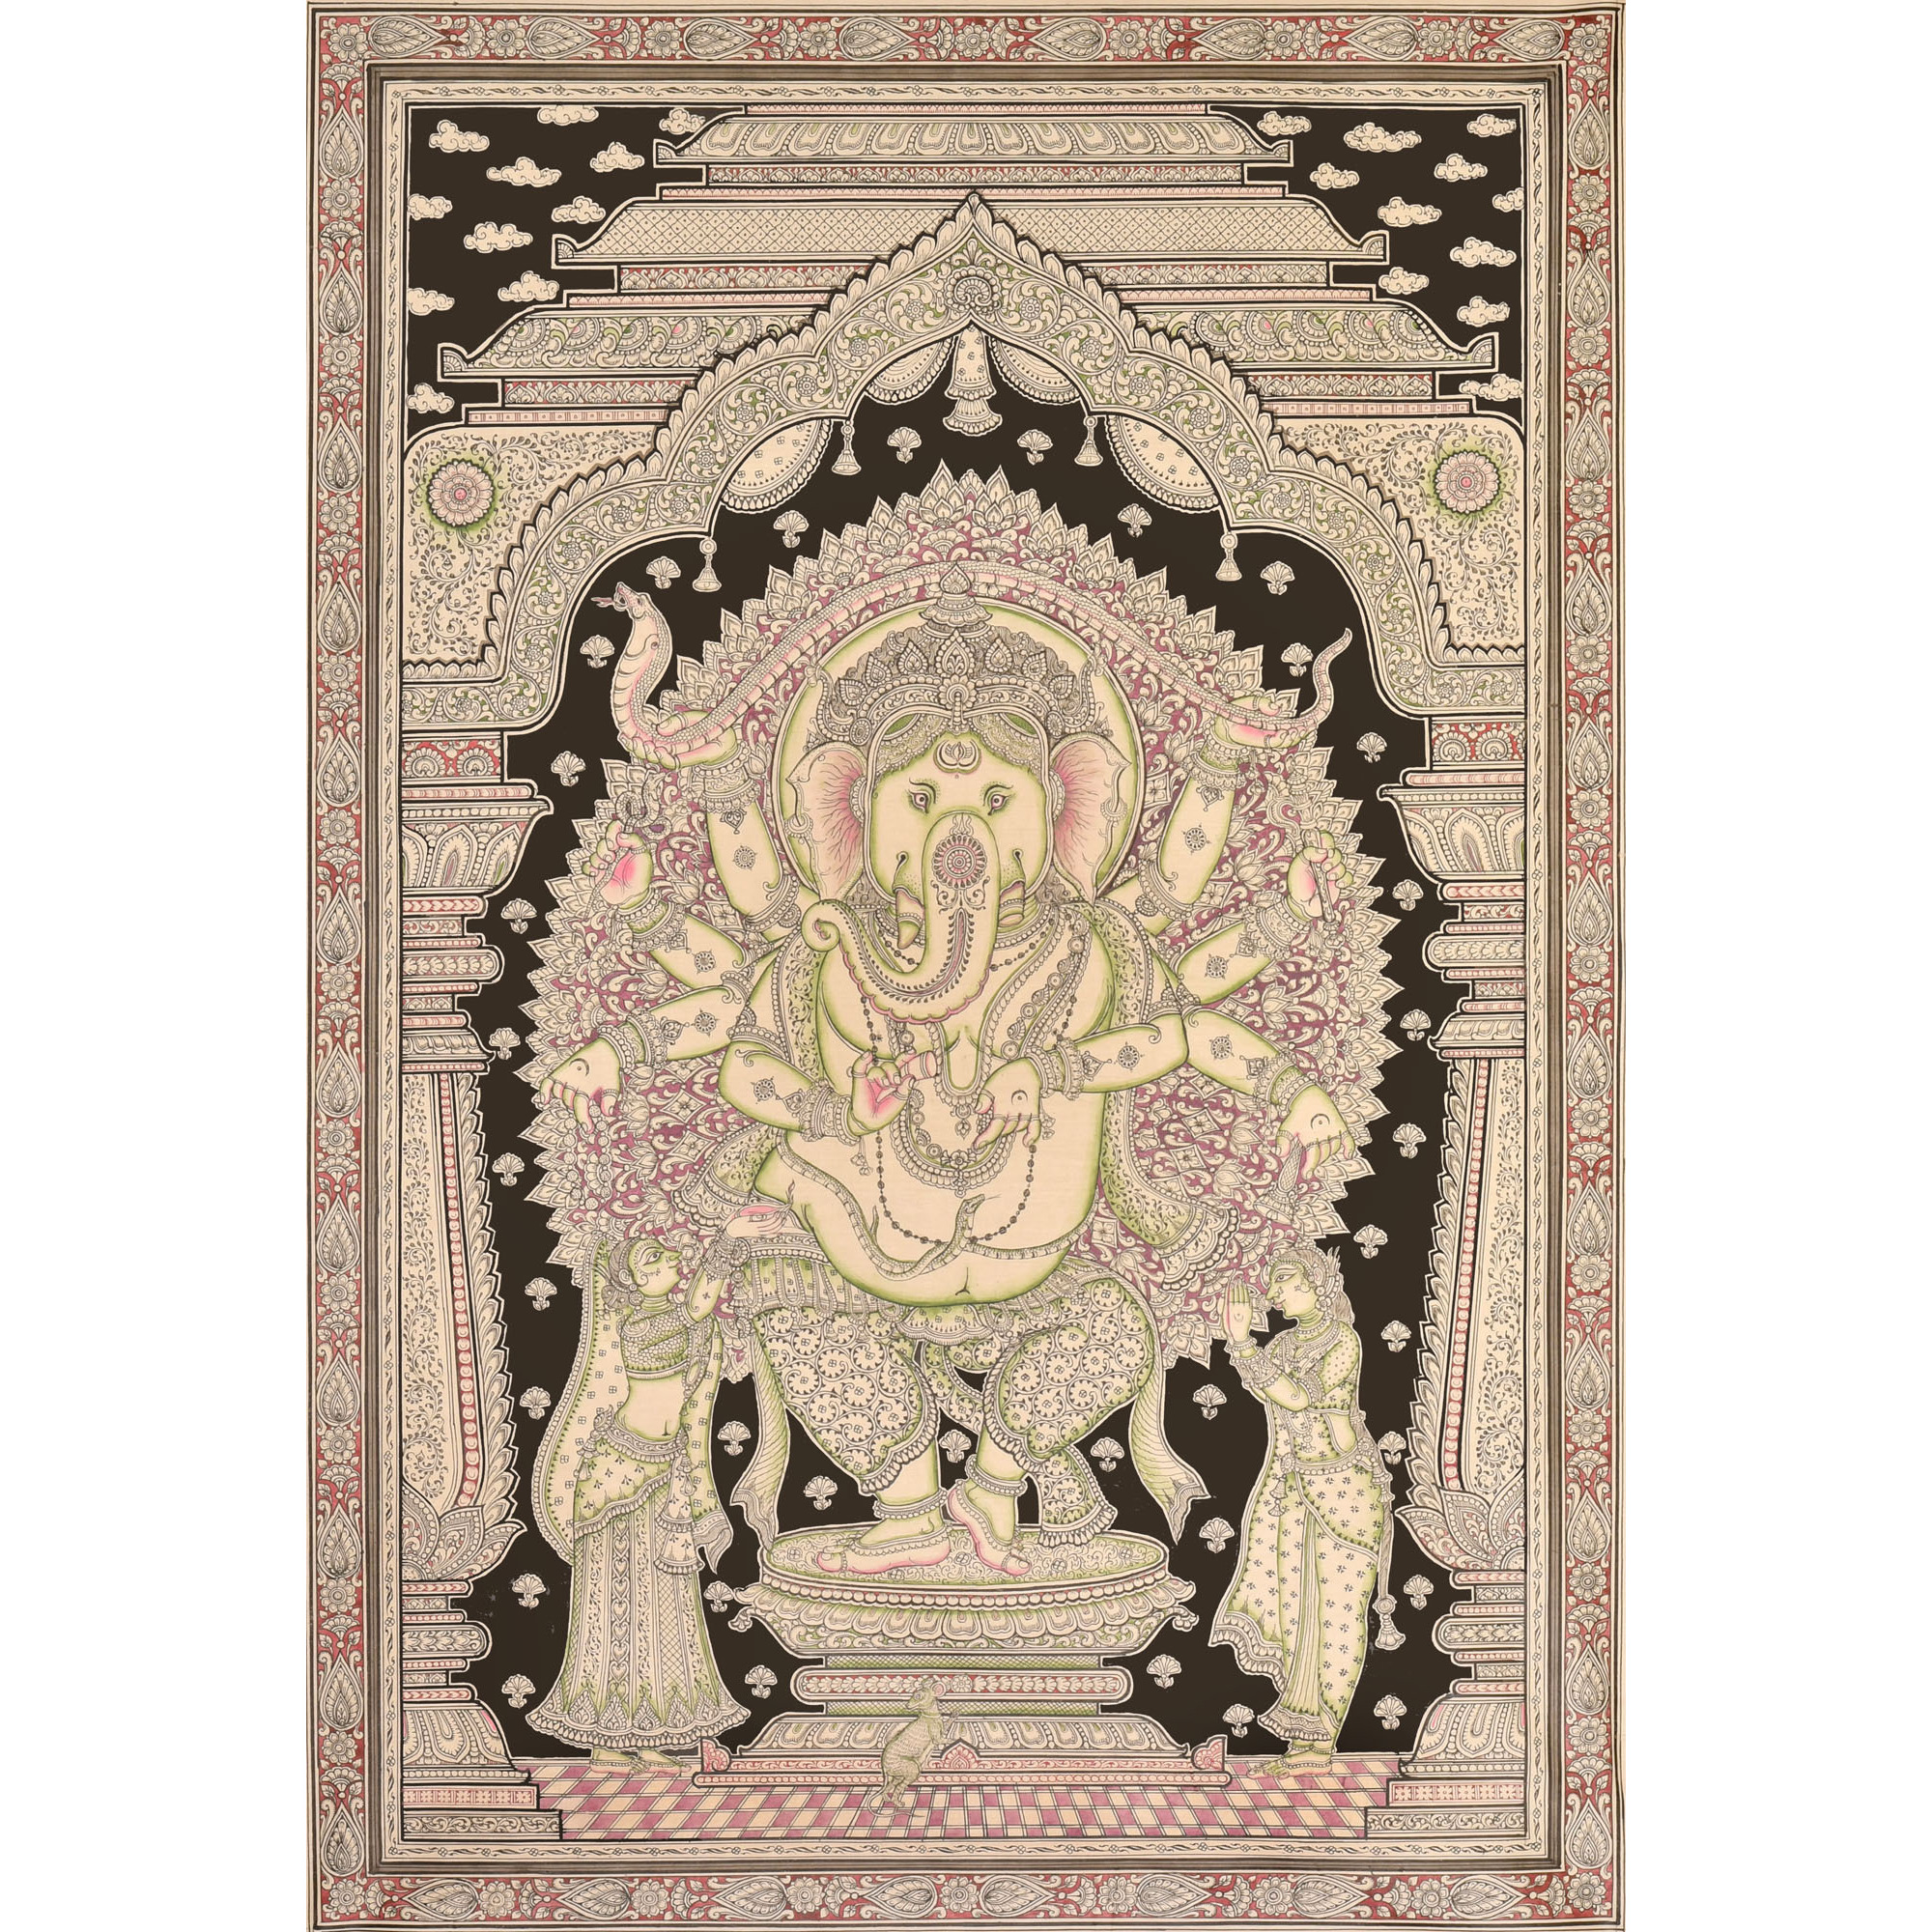 Superfine, Highly Detailed Image of Dancing Ganesha